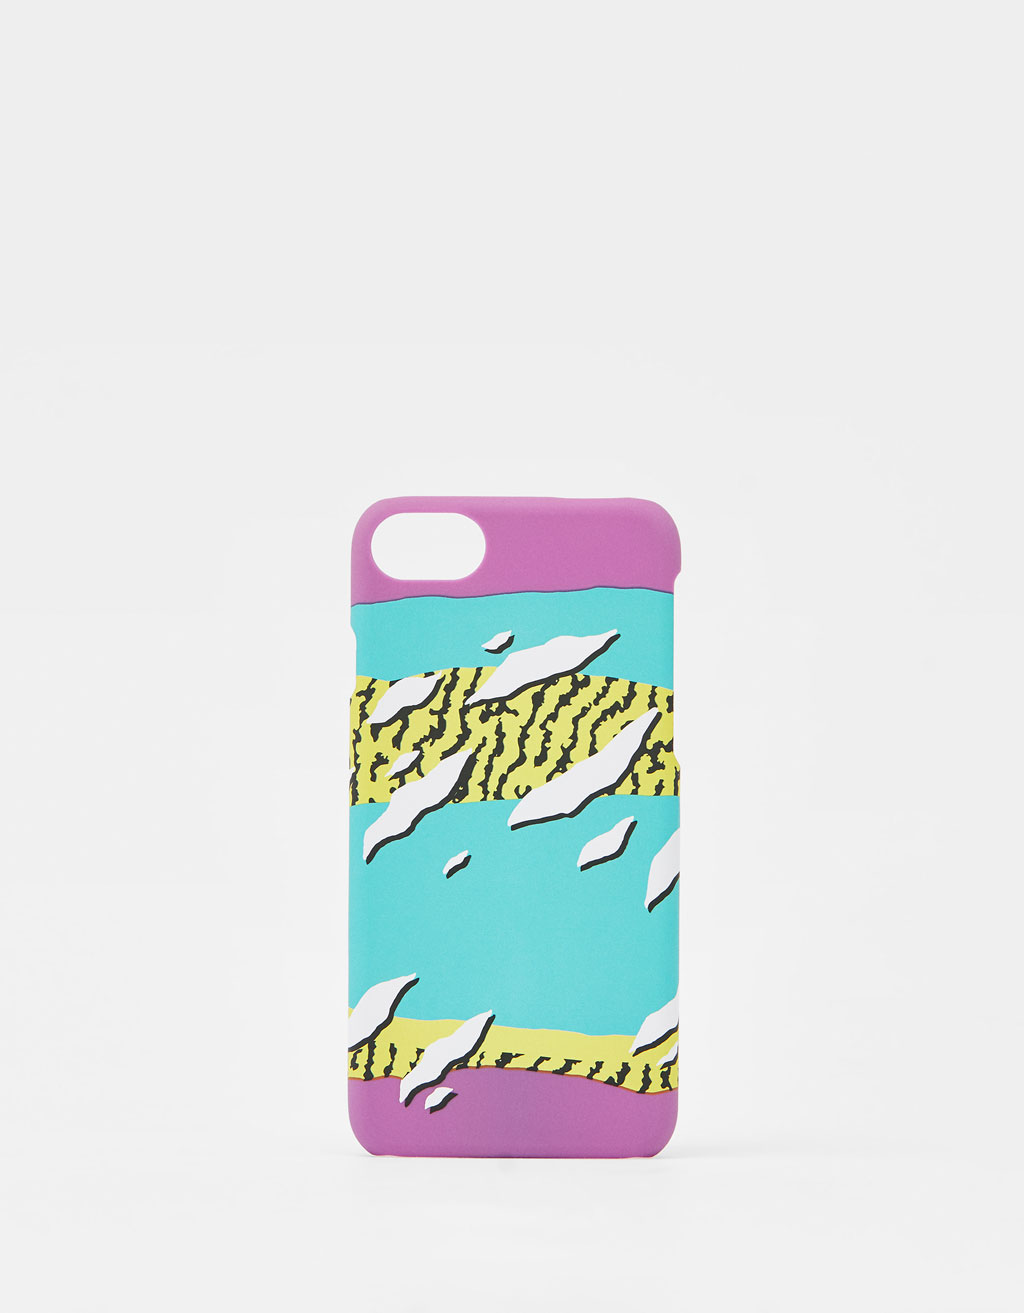 Capa Memphis iPhone 6 / 6S / 7 / 8